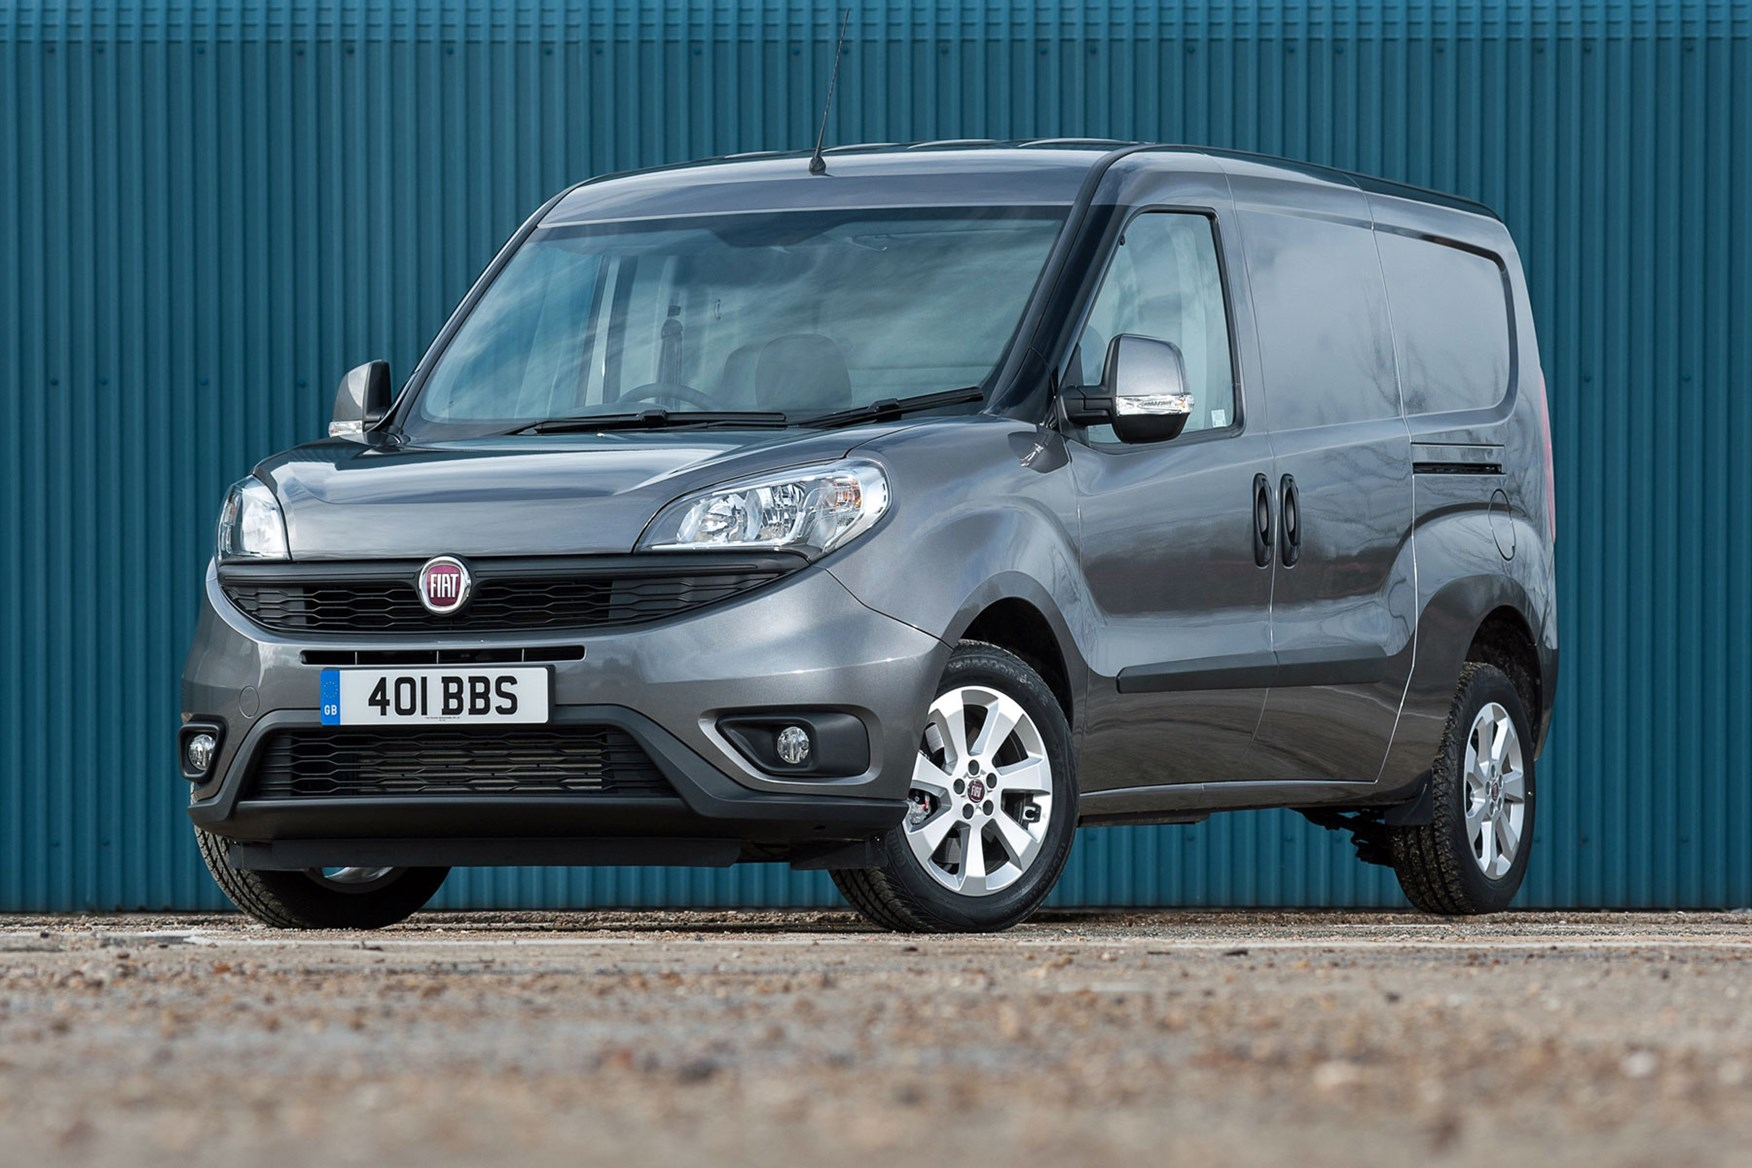 Fiat Doblo review - front view, dark grey, facelift model